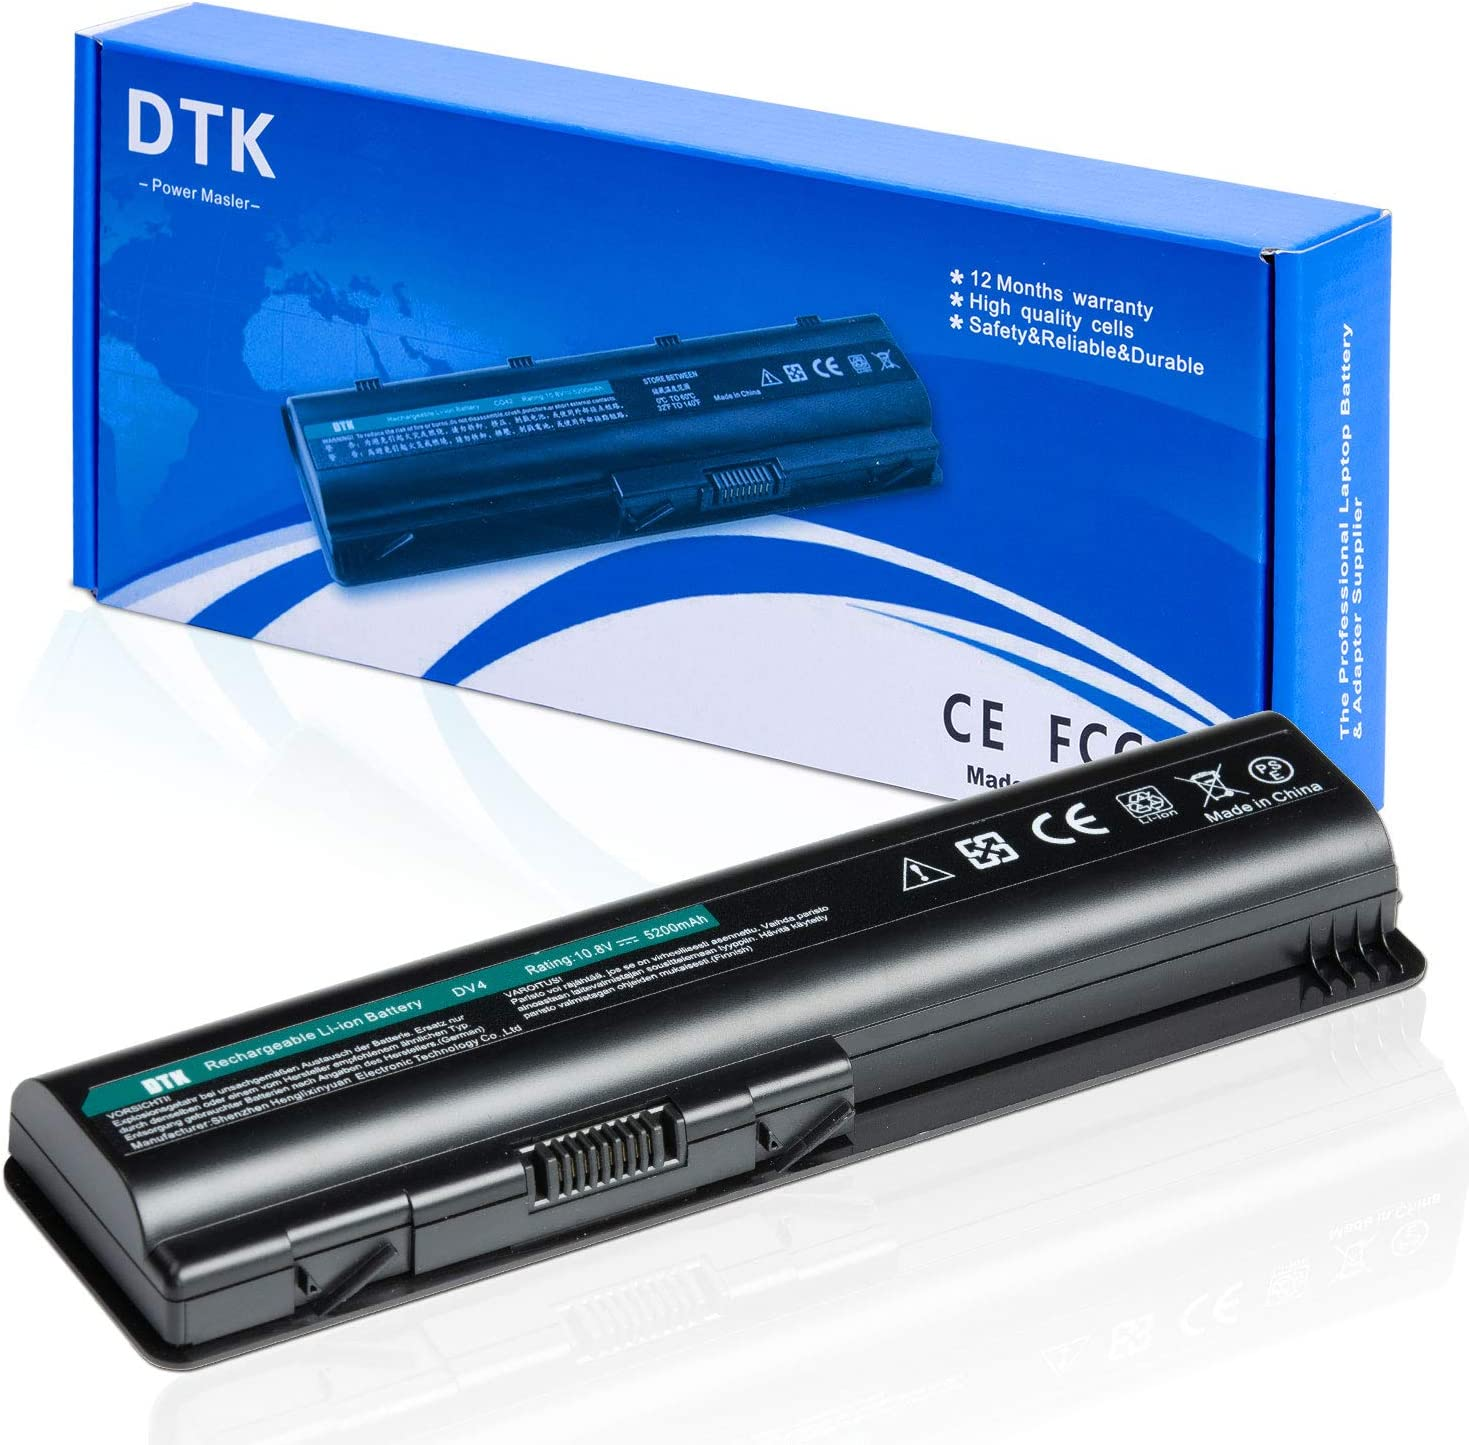 DTK EV06 484170-001 Laptop Battery Replacement G61 for Super special price HP G60 G7 Special price a limited time